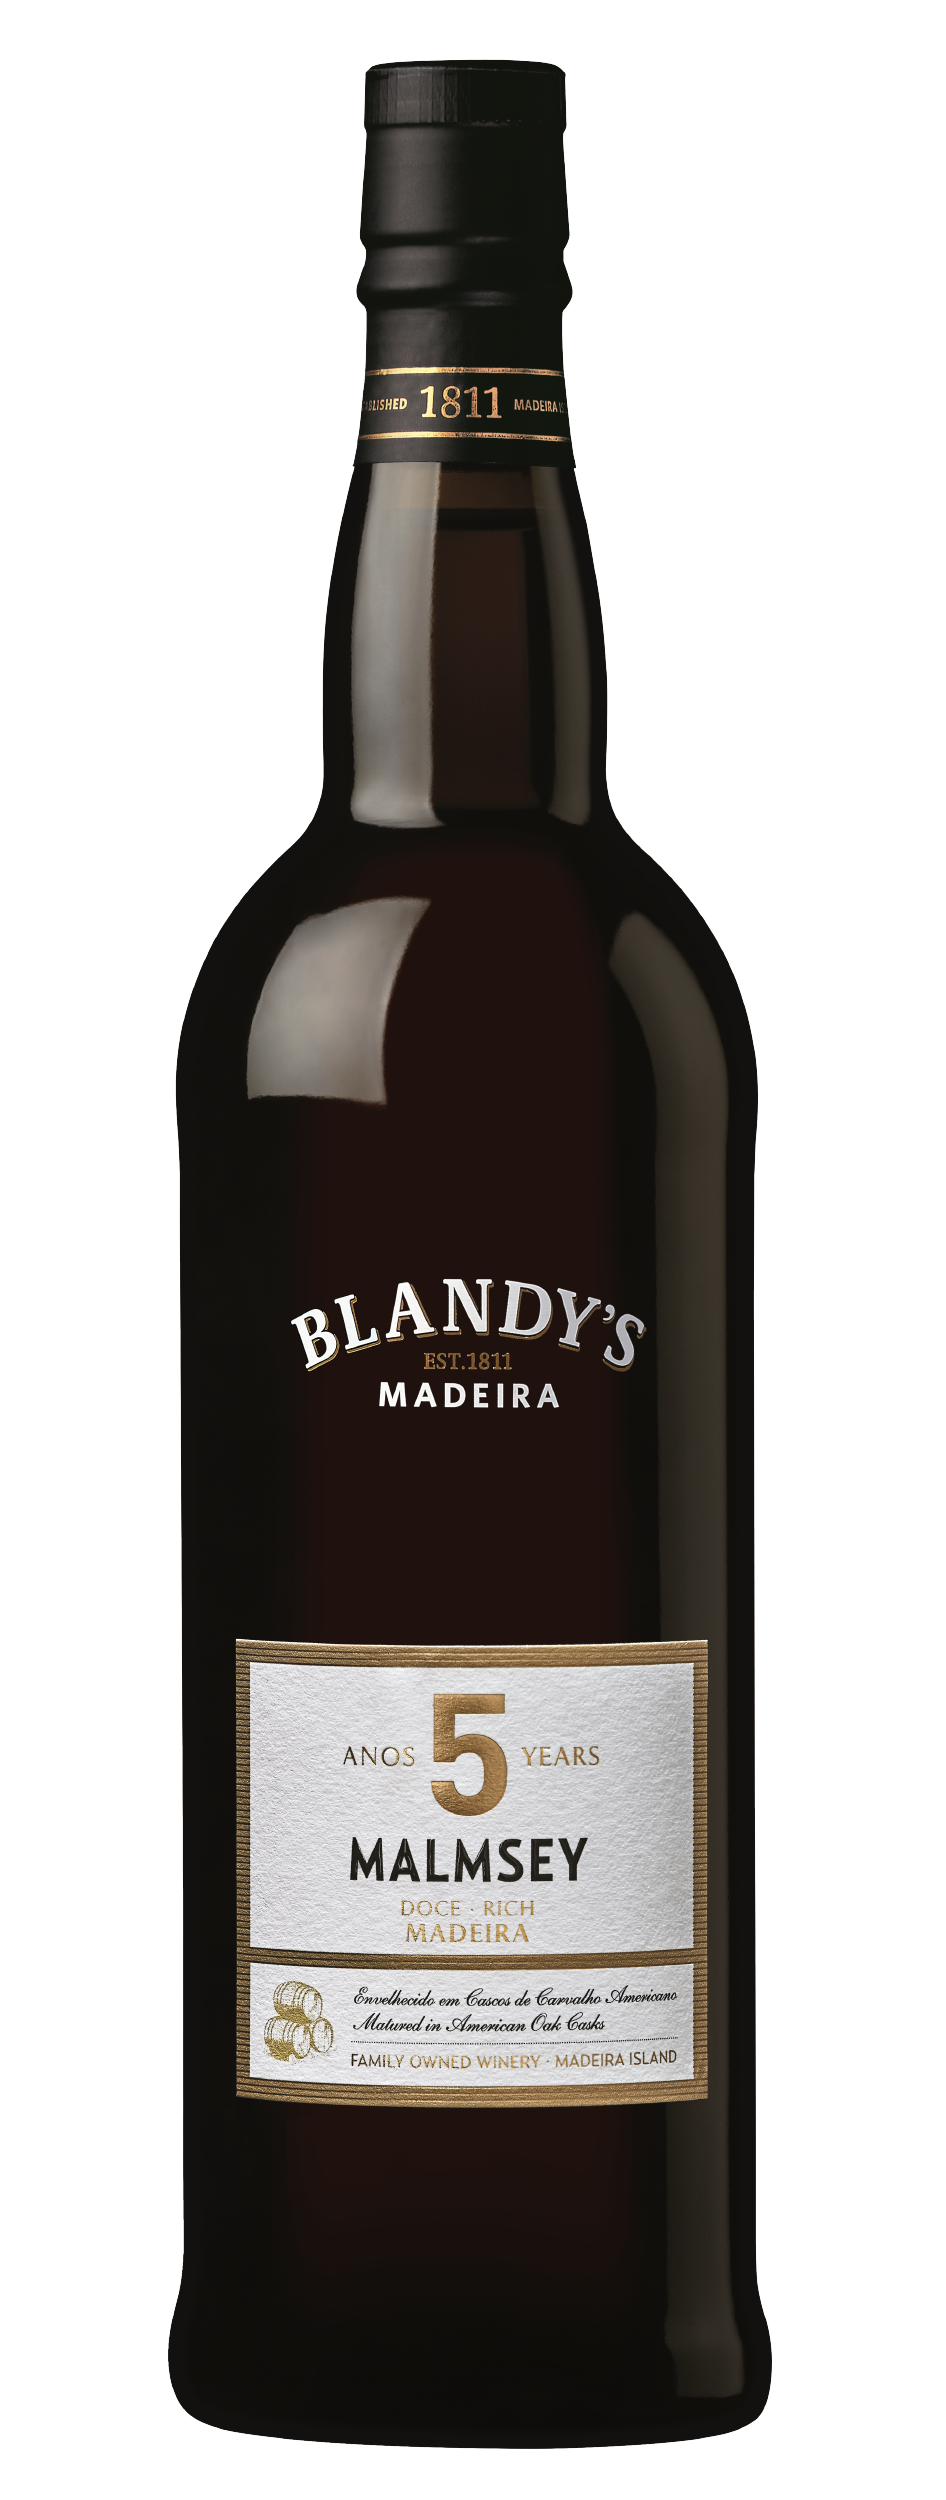 Product Image for BLANDY'S MALMSEY 5 YEAR OLD